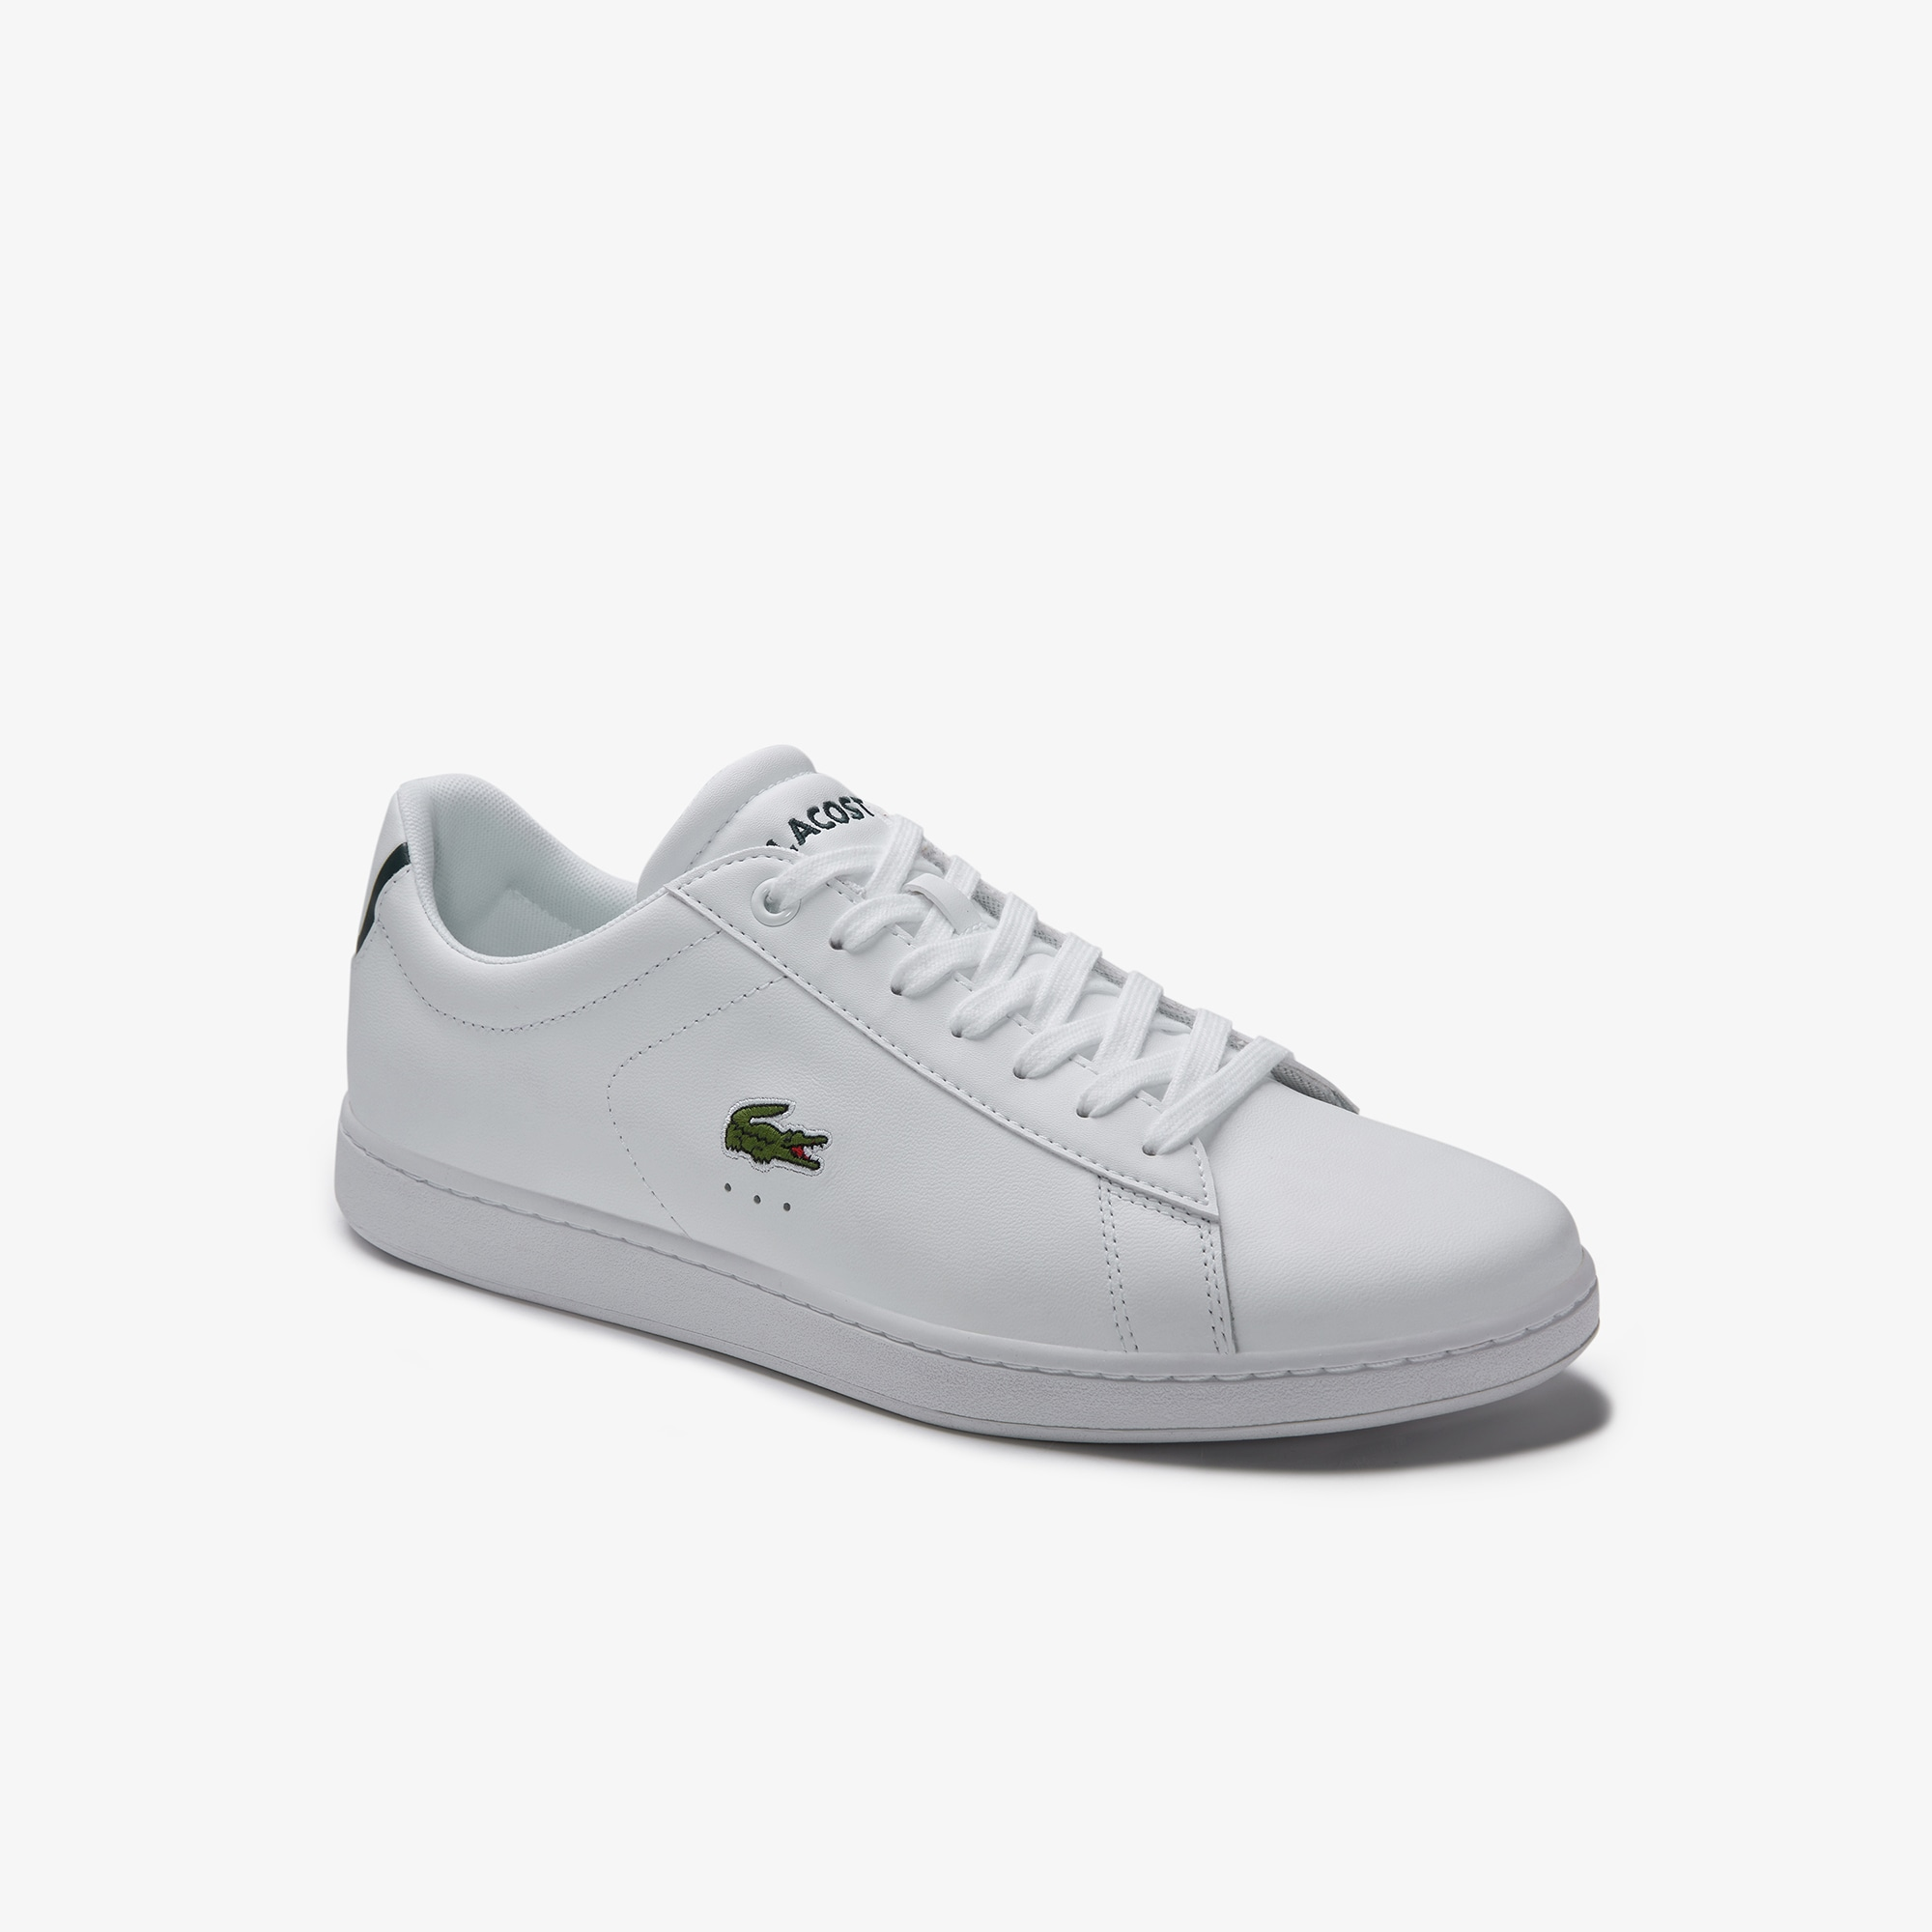 75dccd101502 Lacoste shoes for men  Sneakers